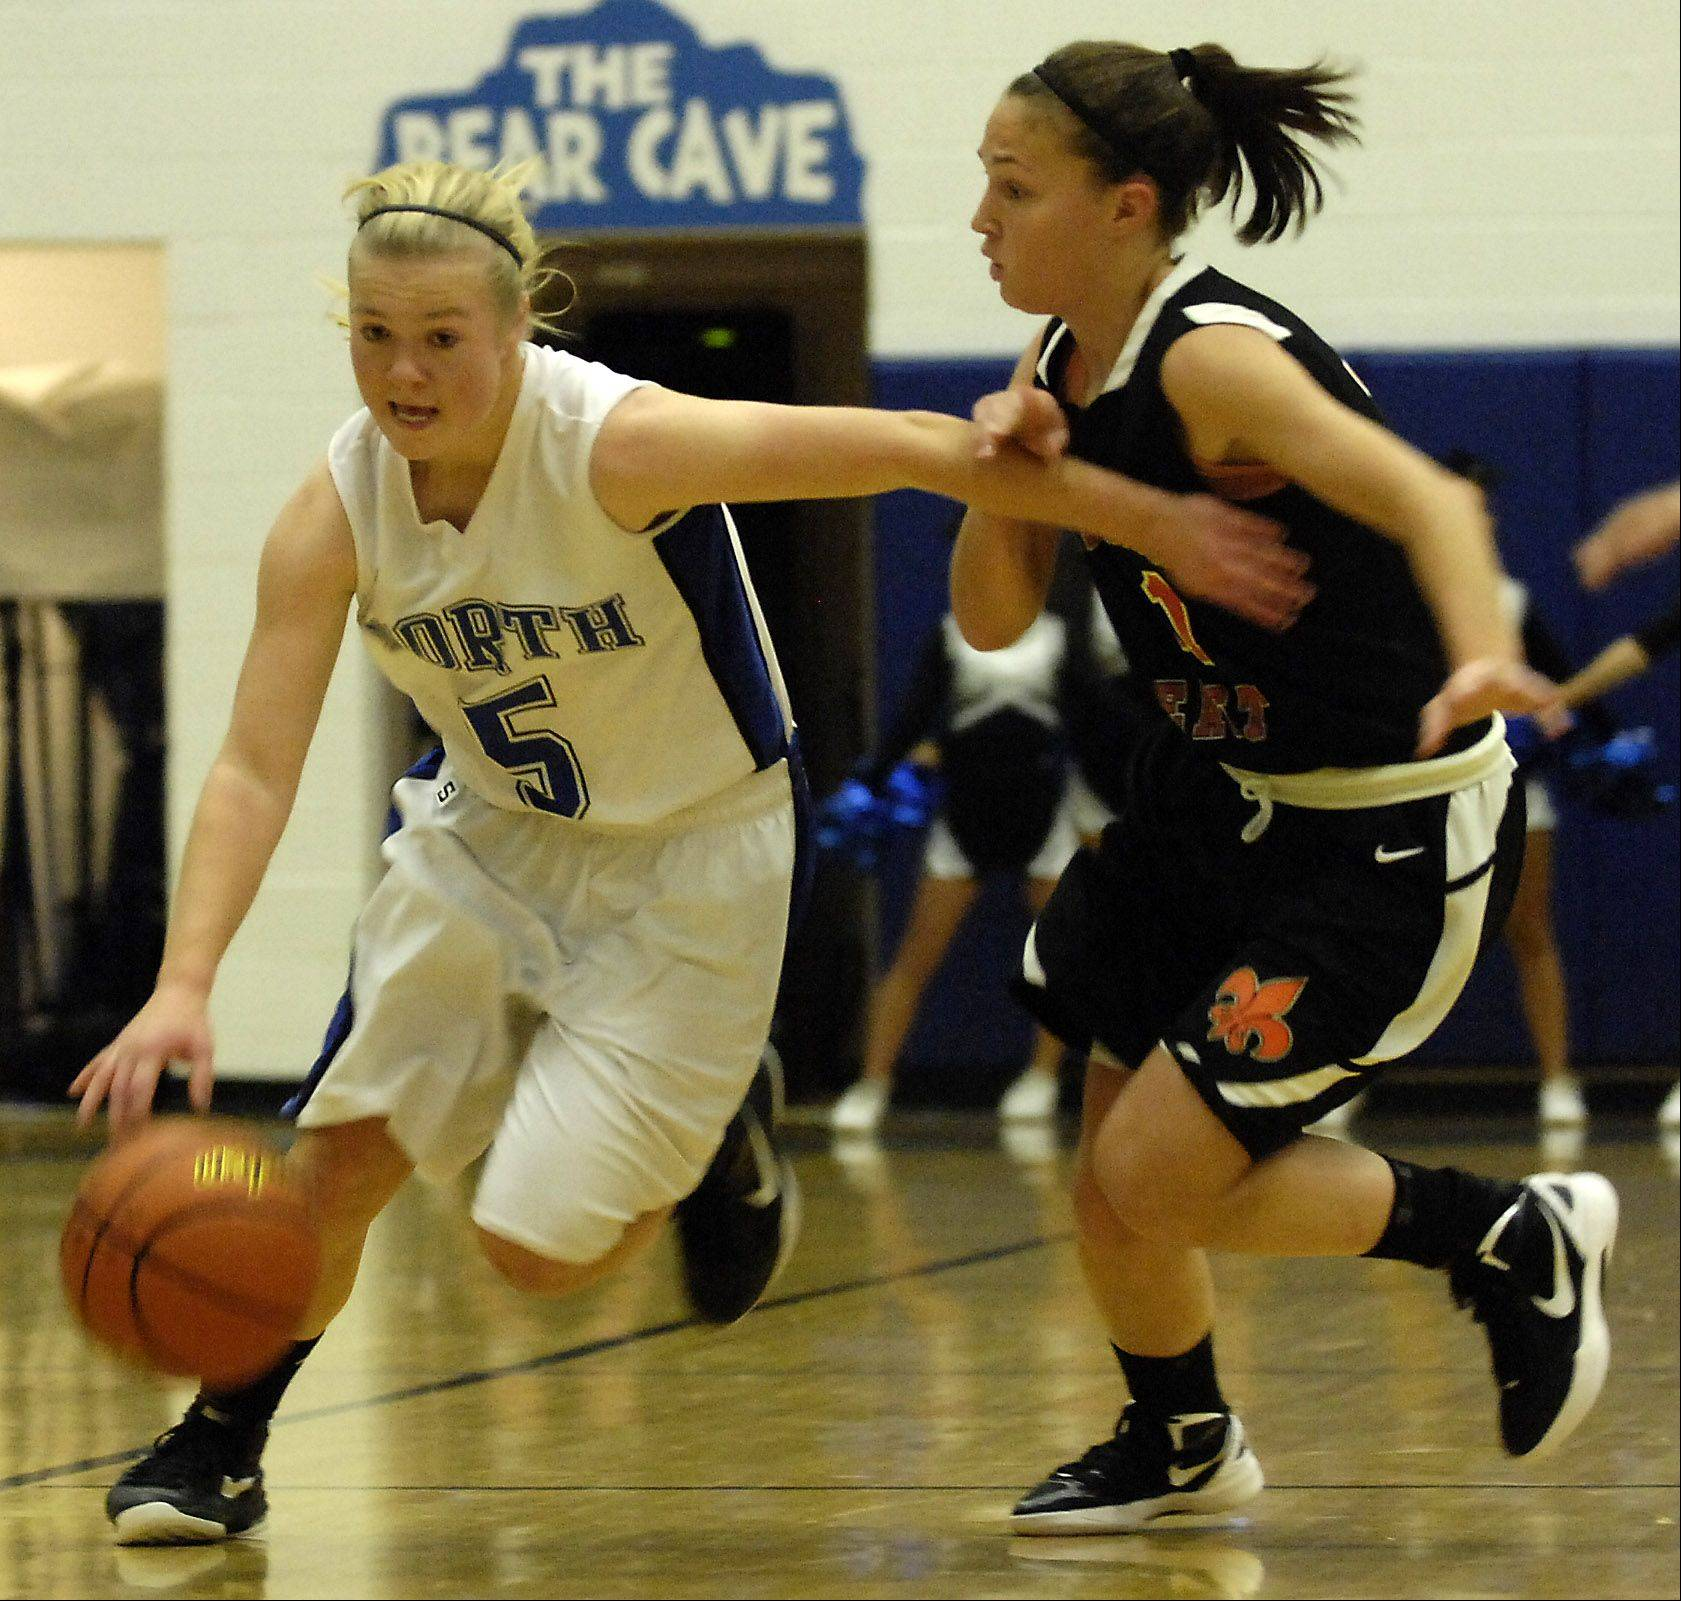 St. Charles North's Natalie Winkates drives past St. Charles East's Carly Pottle during their game Wednesday in St. Charles.